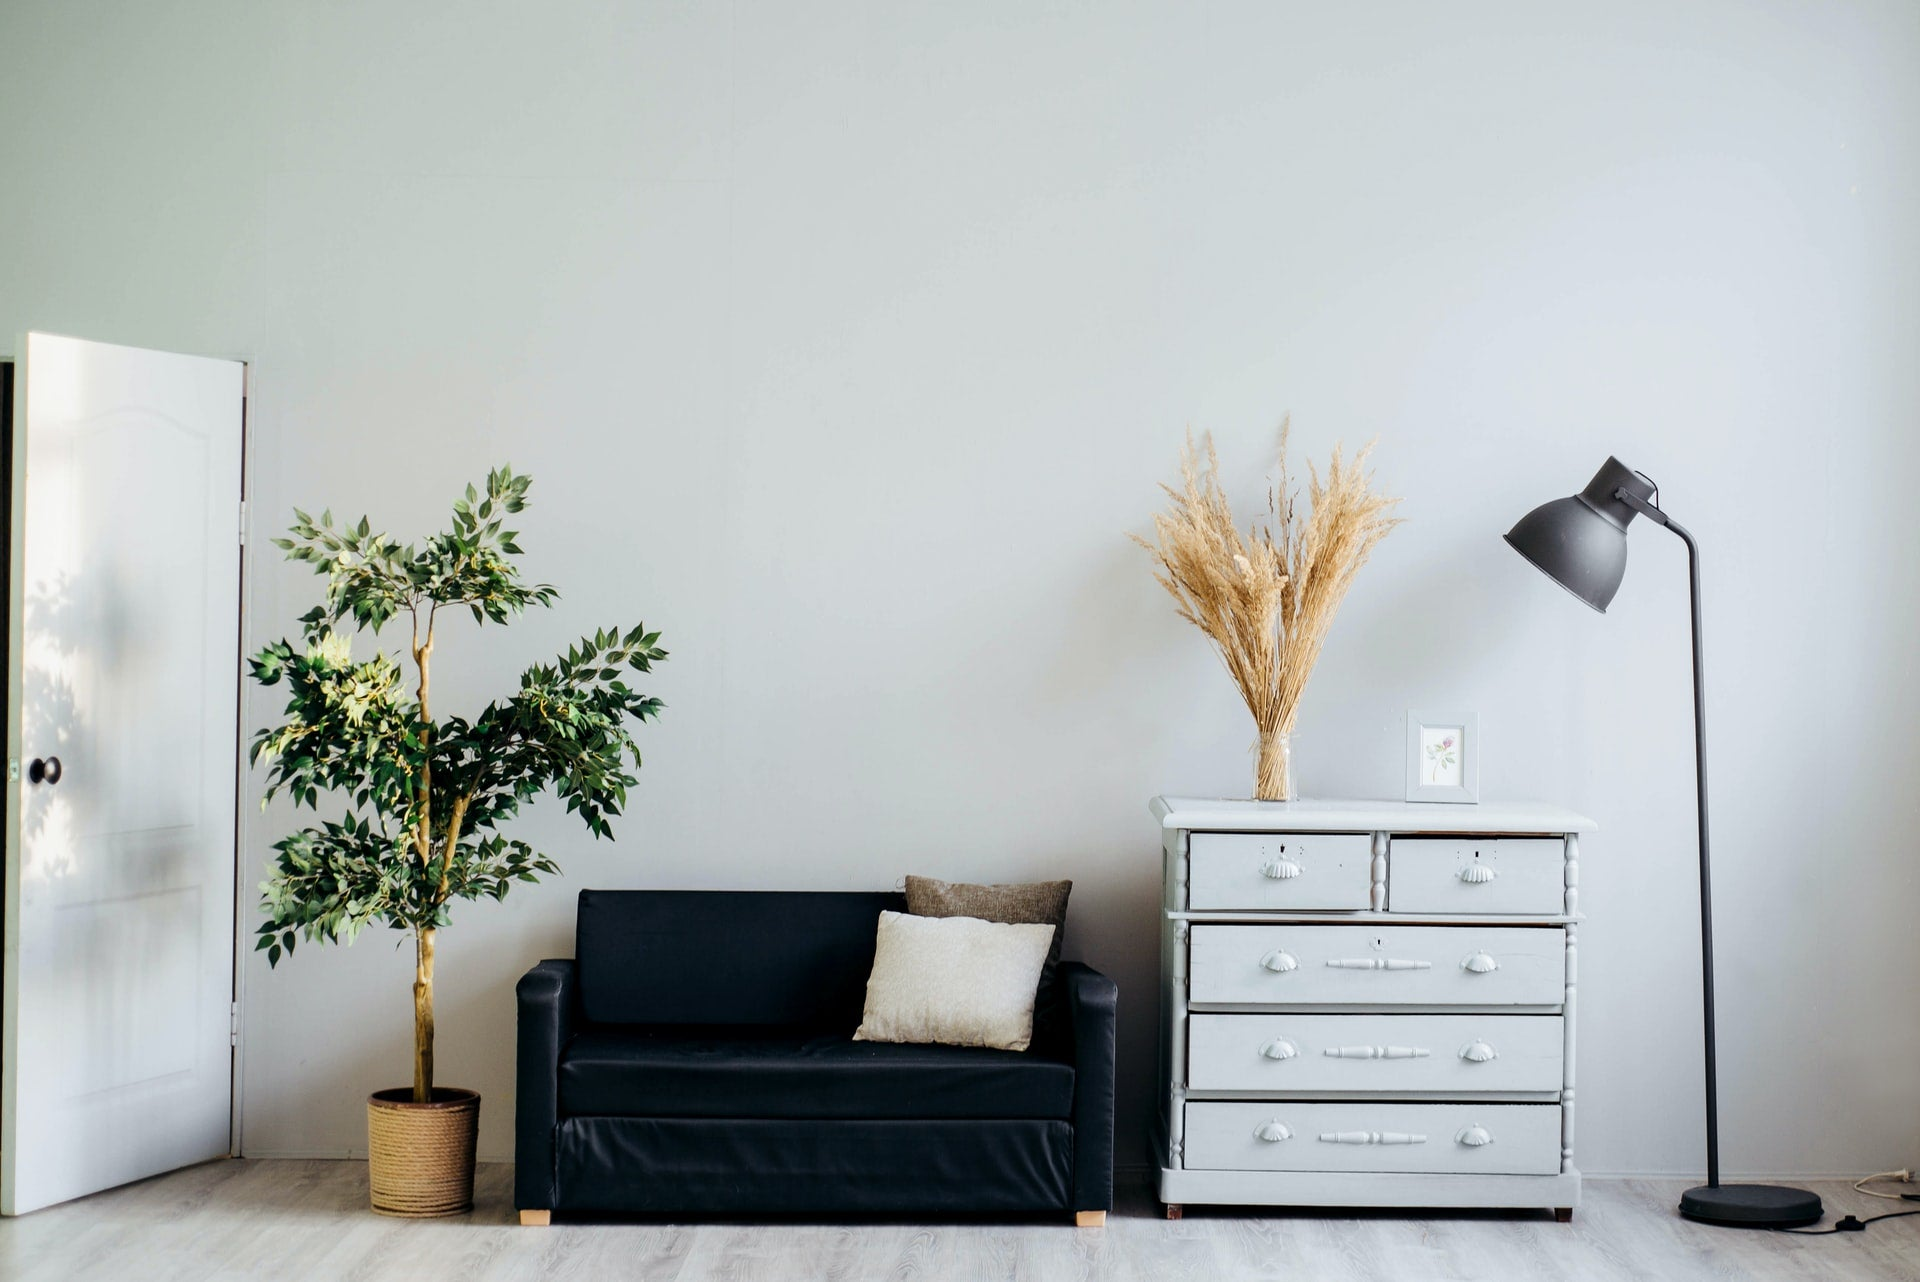 A black couch with indoor plants